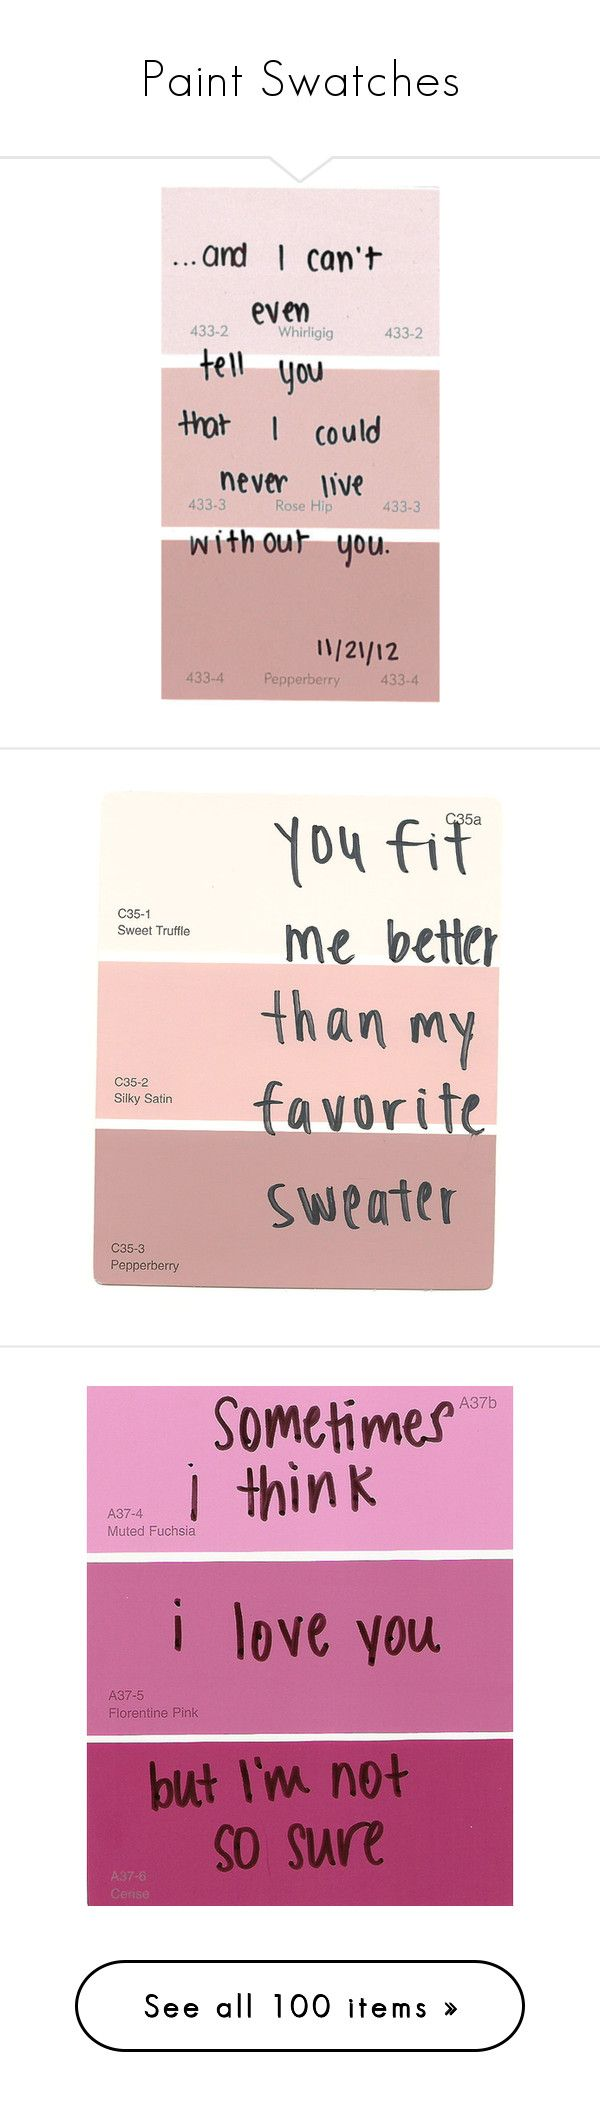 """""""Paint Swatches"""" by skinnyjeansbigdreams ❤ liked on Polyvore featuring fillers, quotes, paint samples, words, text, backgrounds, phrase, saying, pink and pictures"""